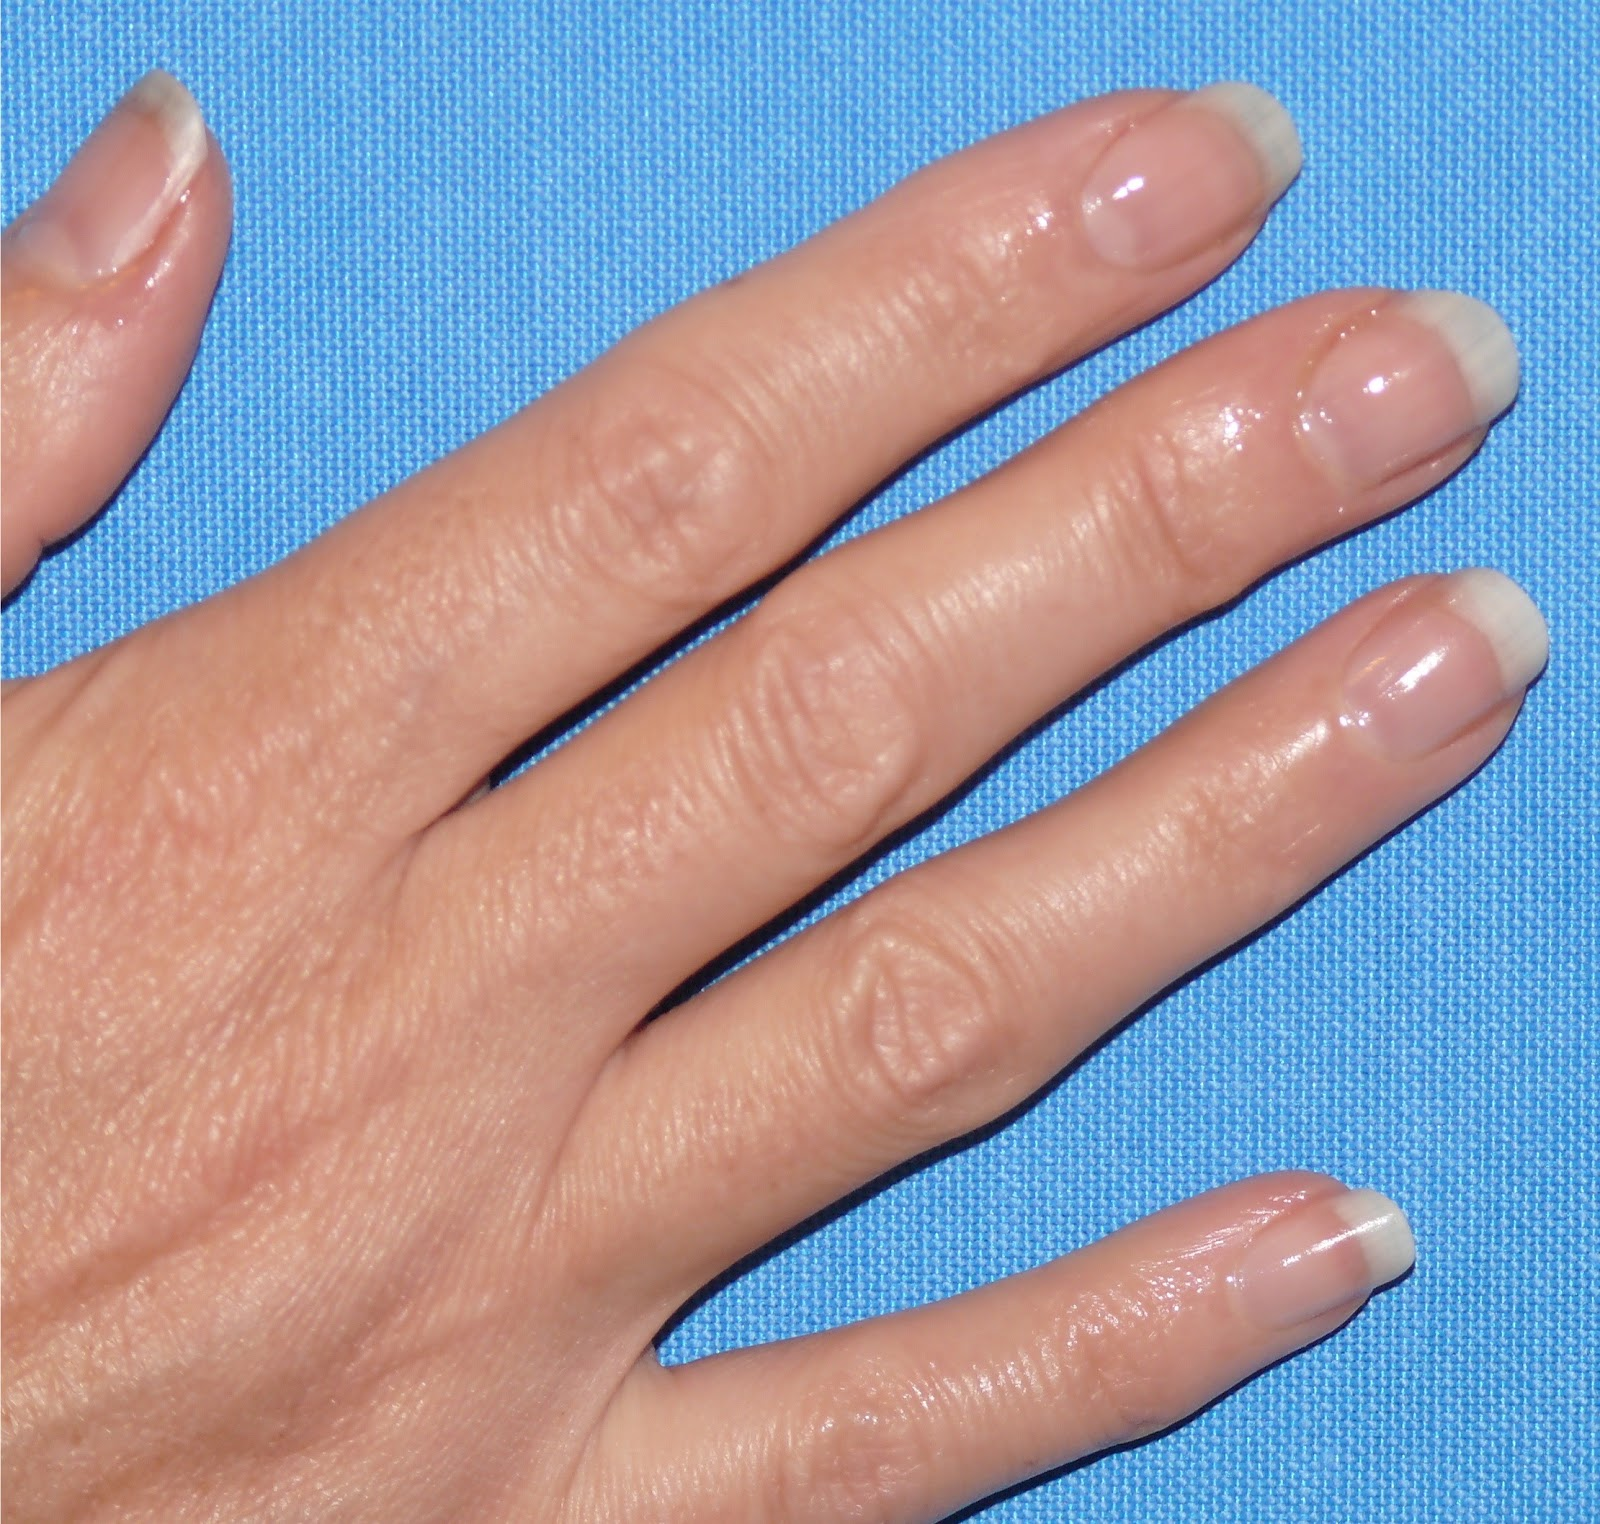 How to strengthen the nails with gelatin 73